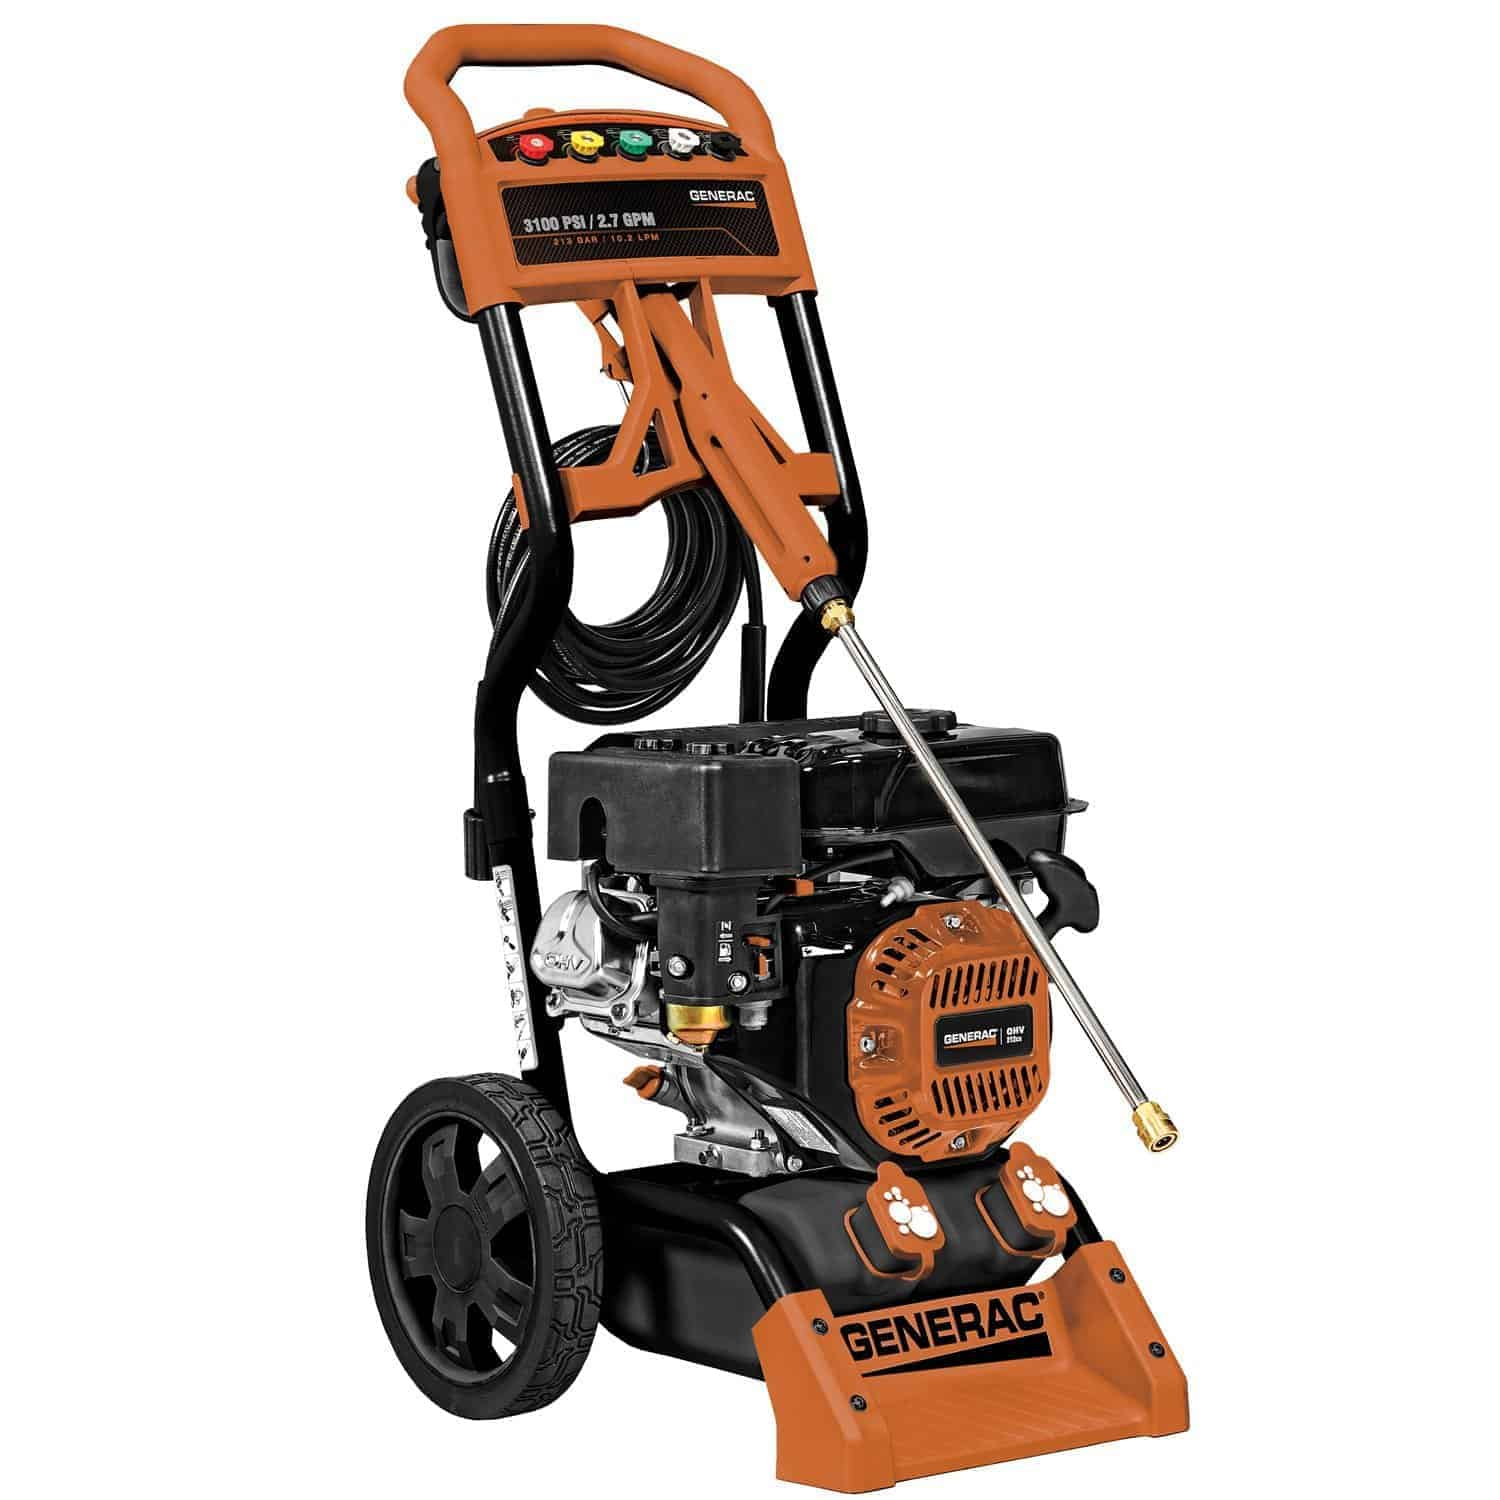 Generac 6598 3,100 PSI 2.7 GPM 212cc OHV Gas Powered Residential Pressure Washer review